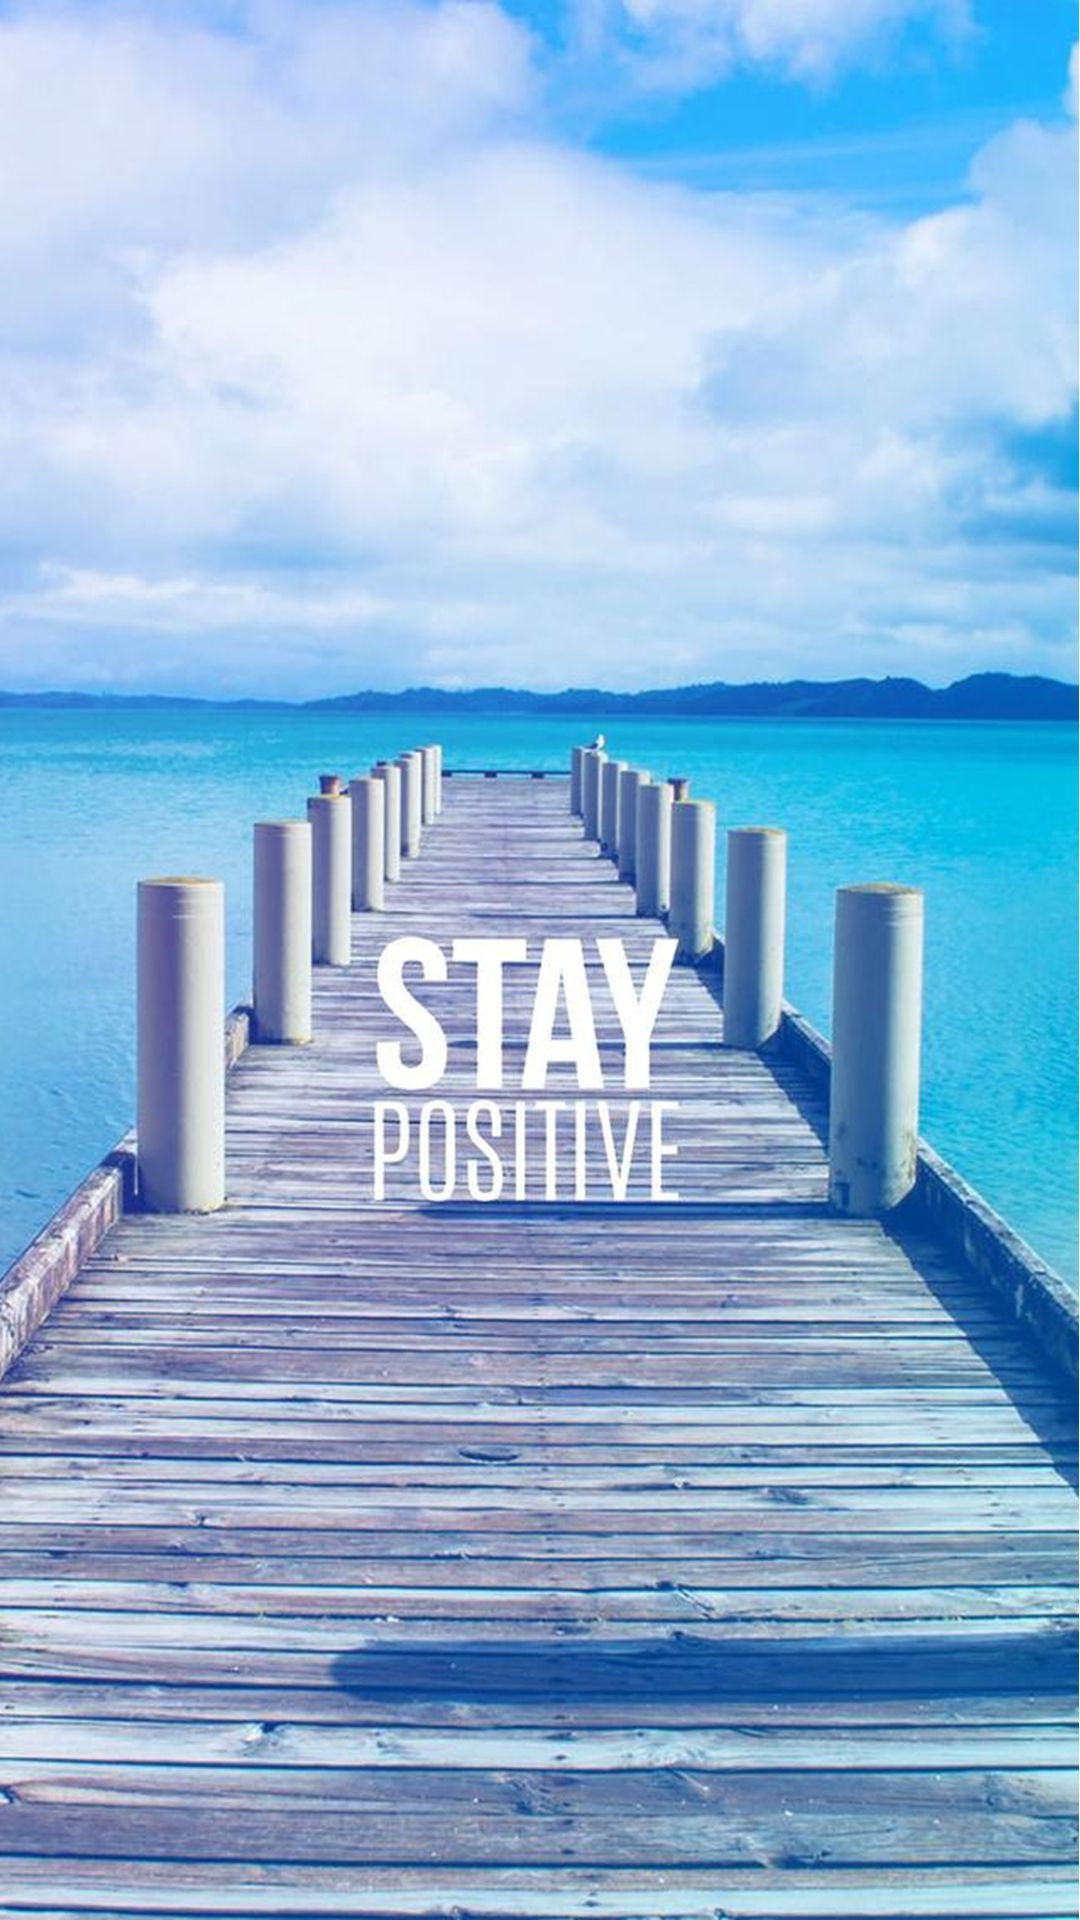 Stay Positive Motivational iPhone 6 wallpaper ∆°Ūřbăņ